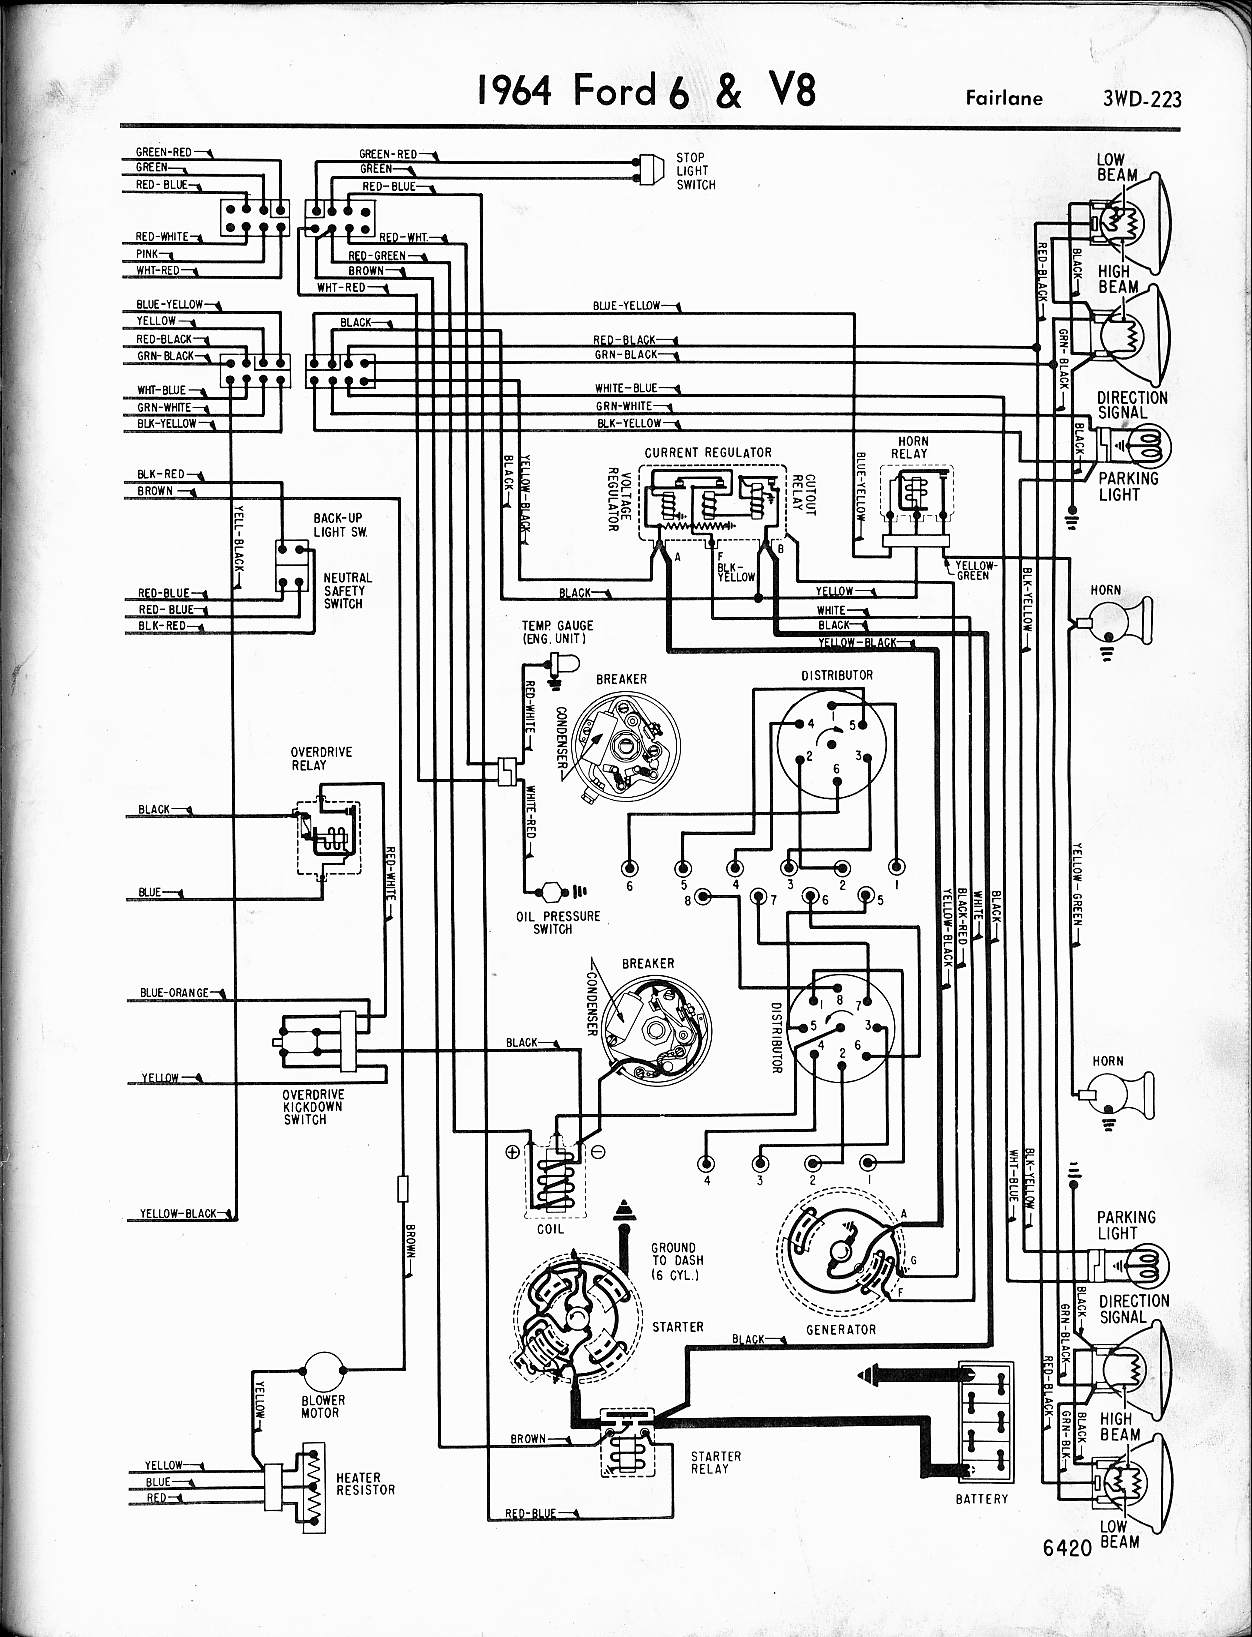 MWire5765 223 1964 ford f100 wiring diagram 1966 ford truck wiring diagram 1961 ford truck wiring diagram at gsmportal.co